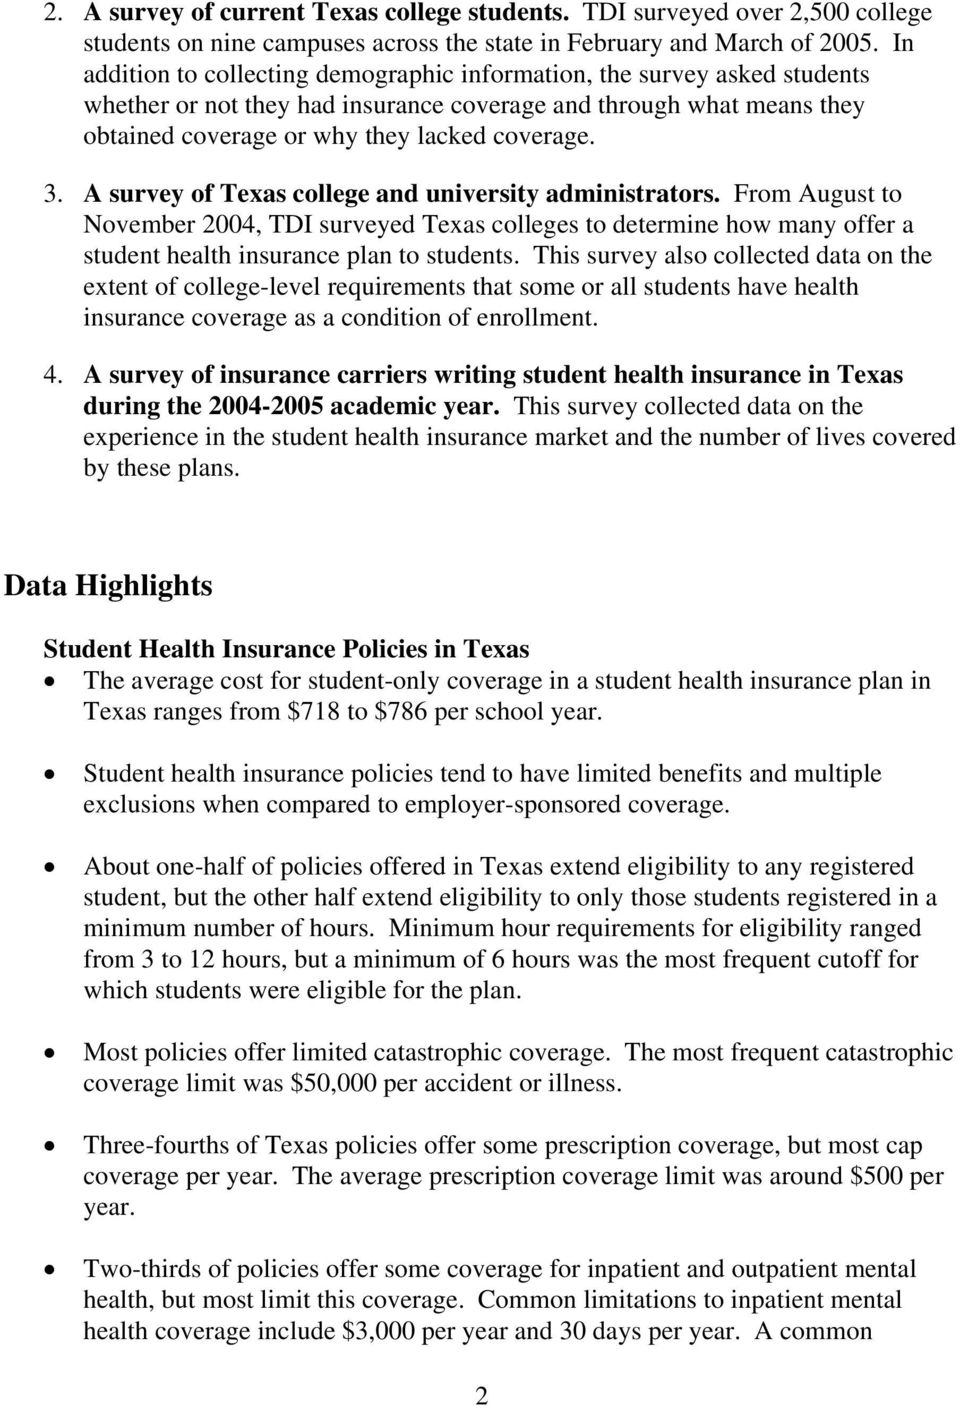 A survey of Texas college and university administrators. From August to November 2004, TDI surveyed Texas colleges to determine how many offer a student health insurance plan to students.